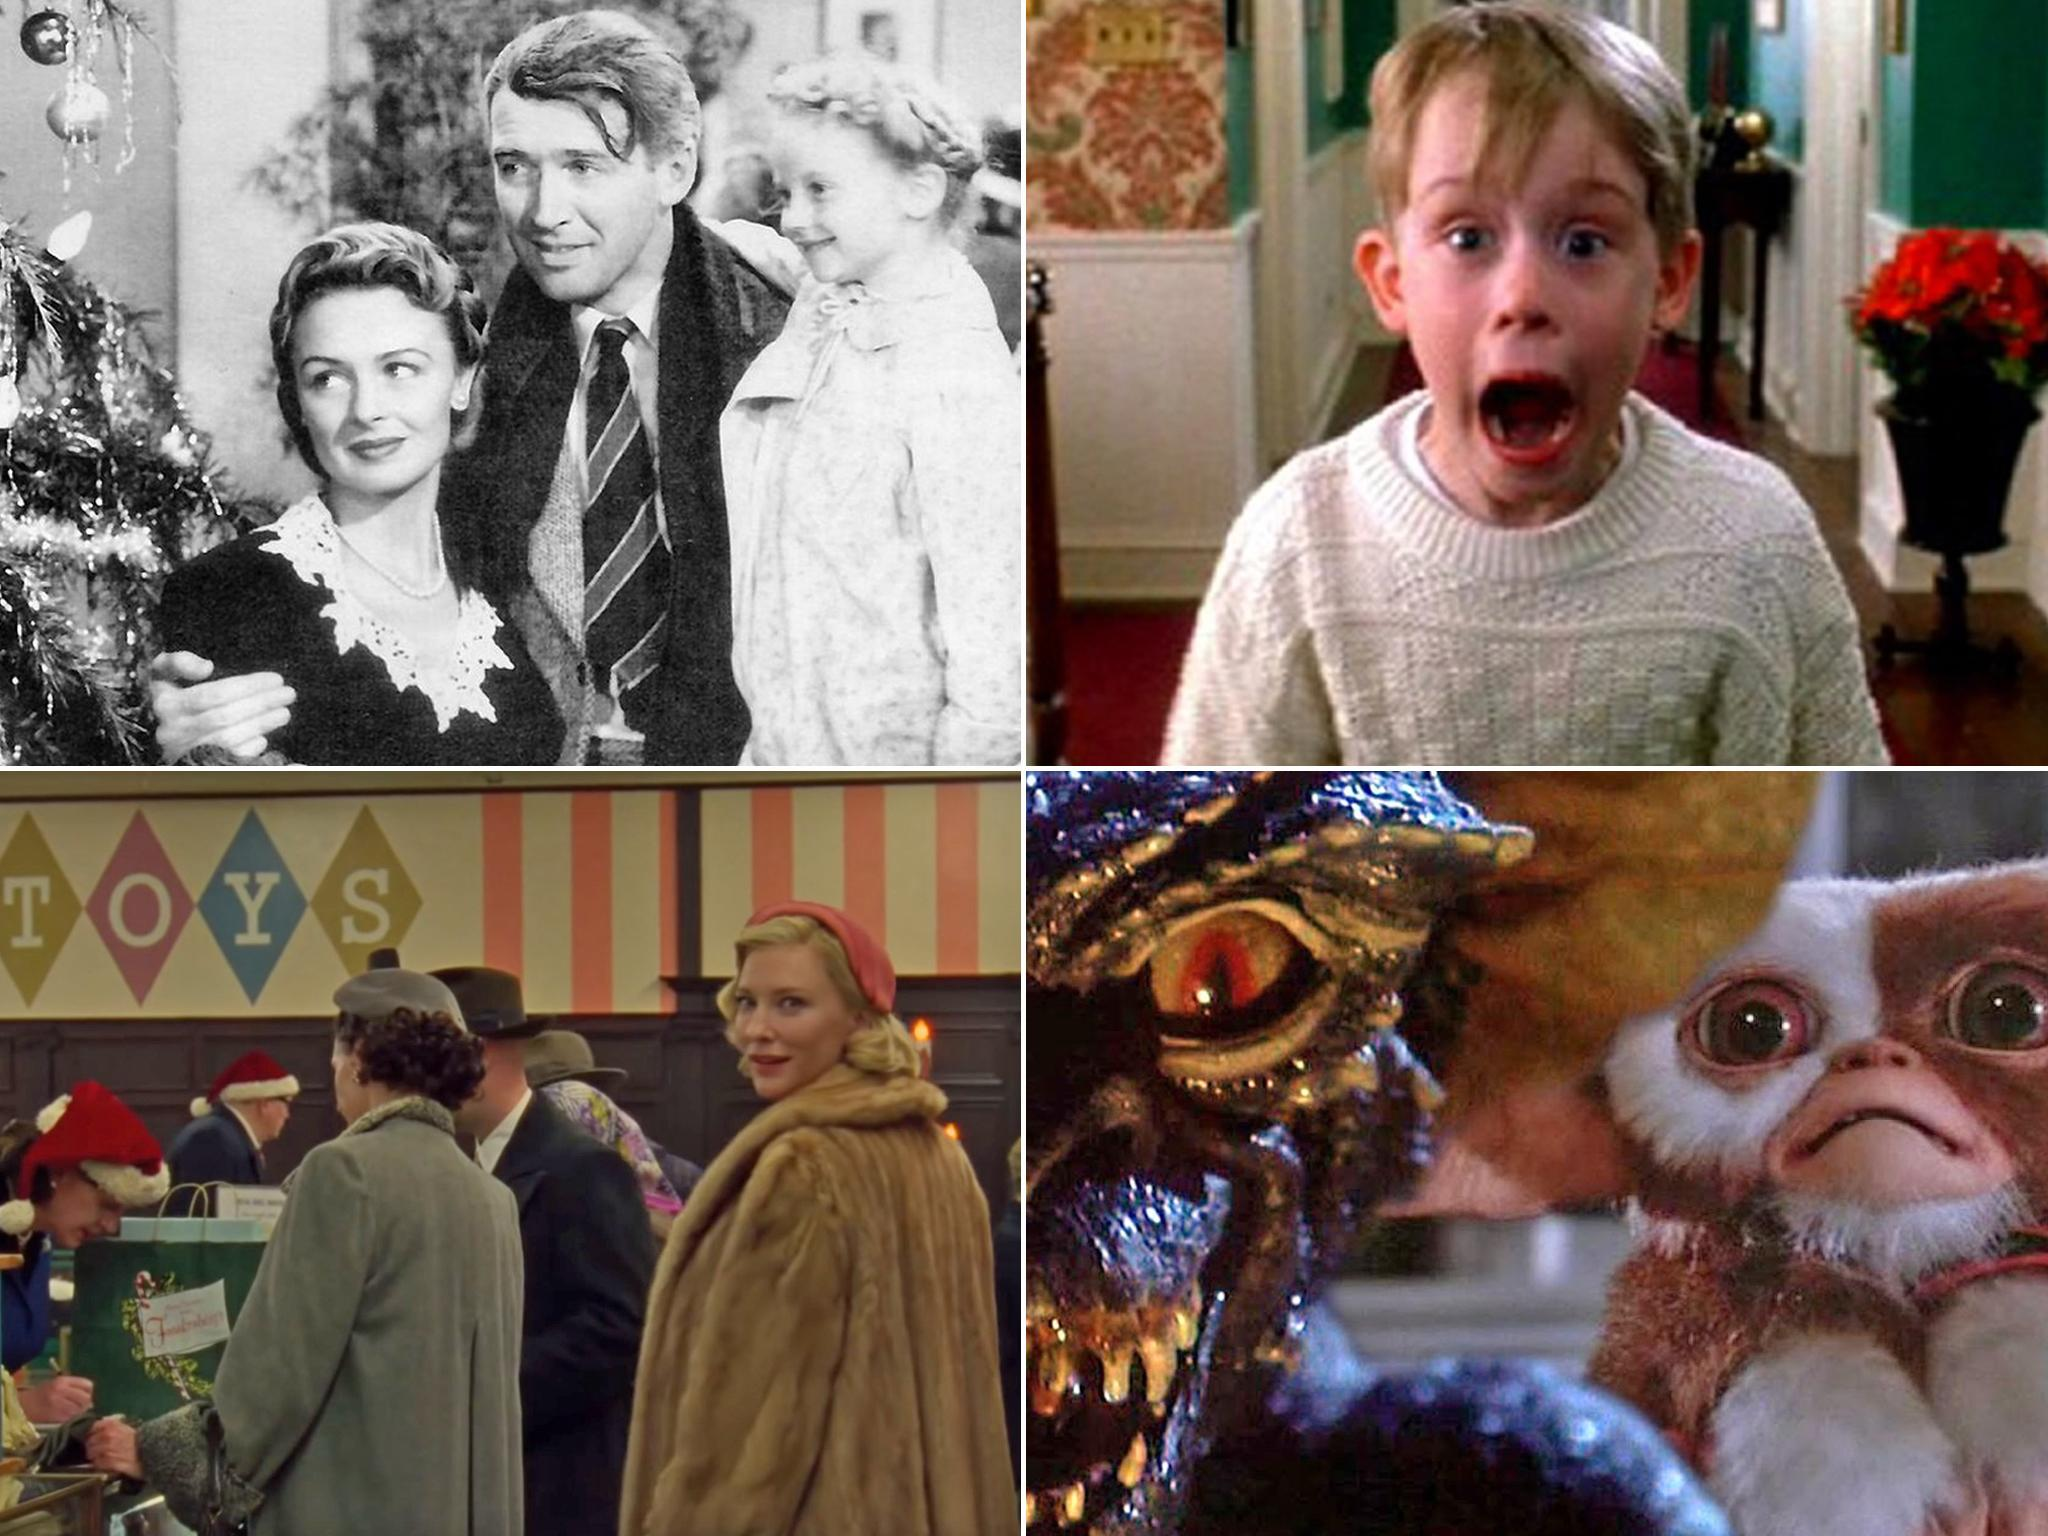 The 20 best Christmas films of all time – ranked